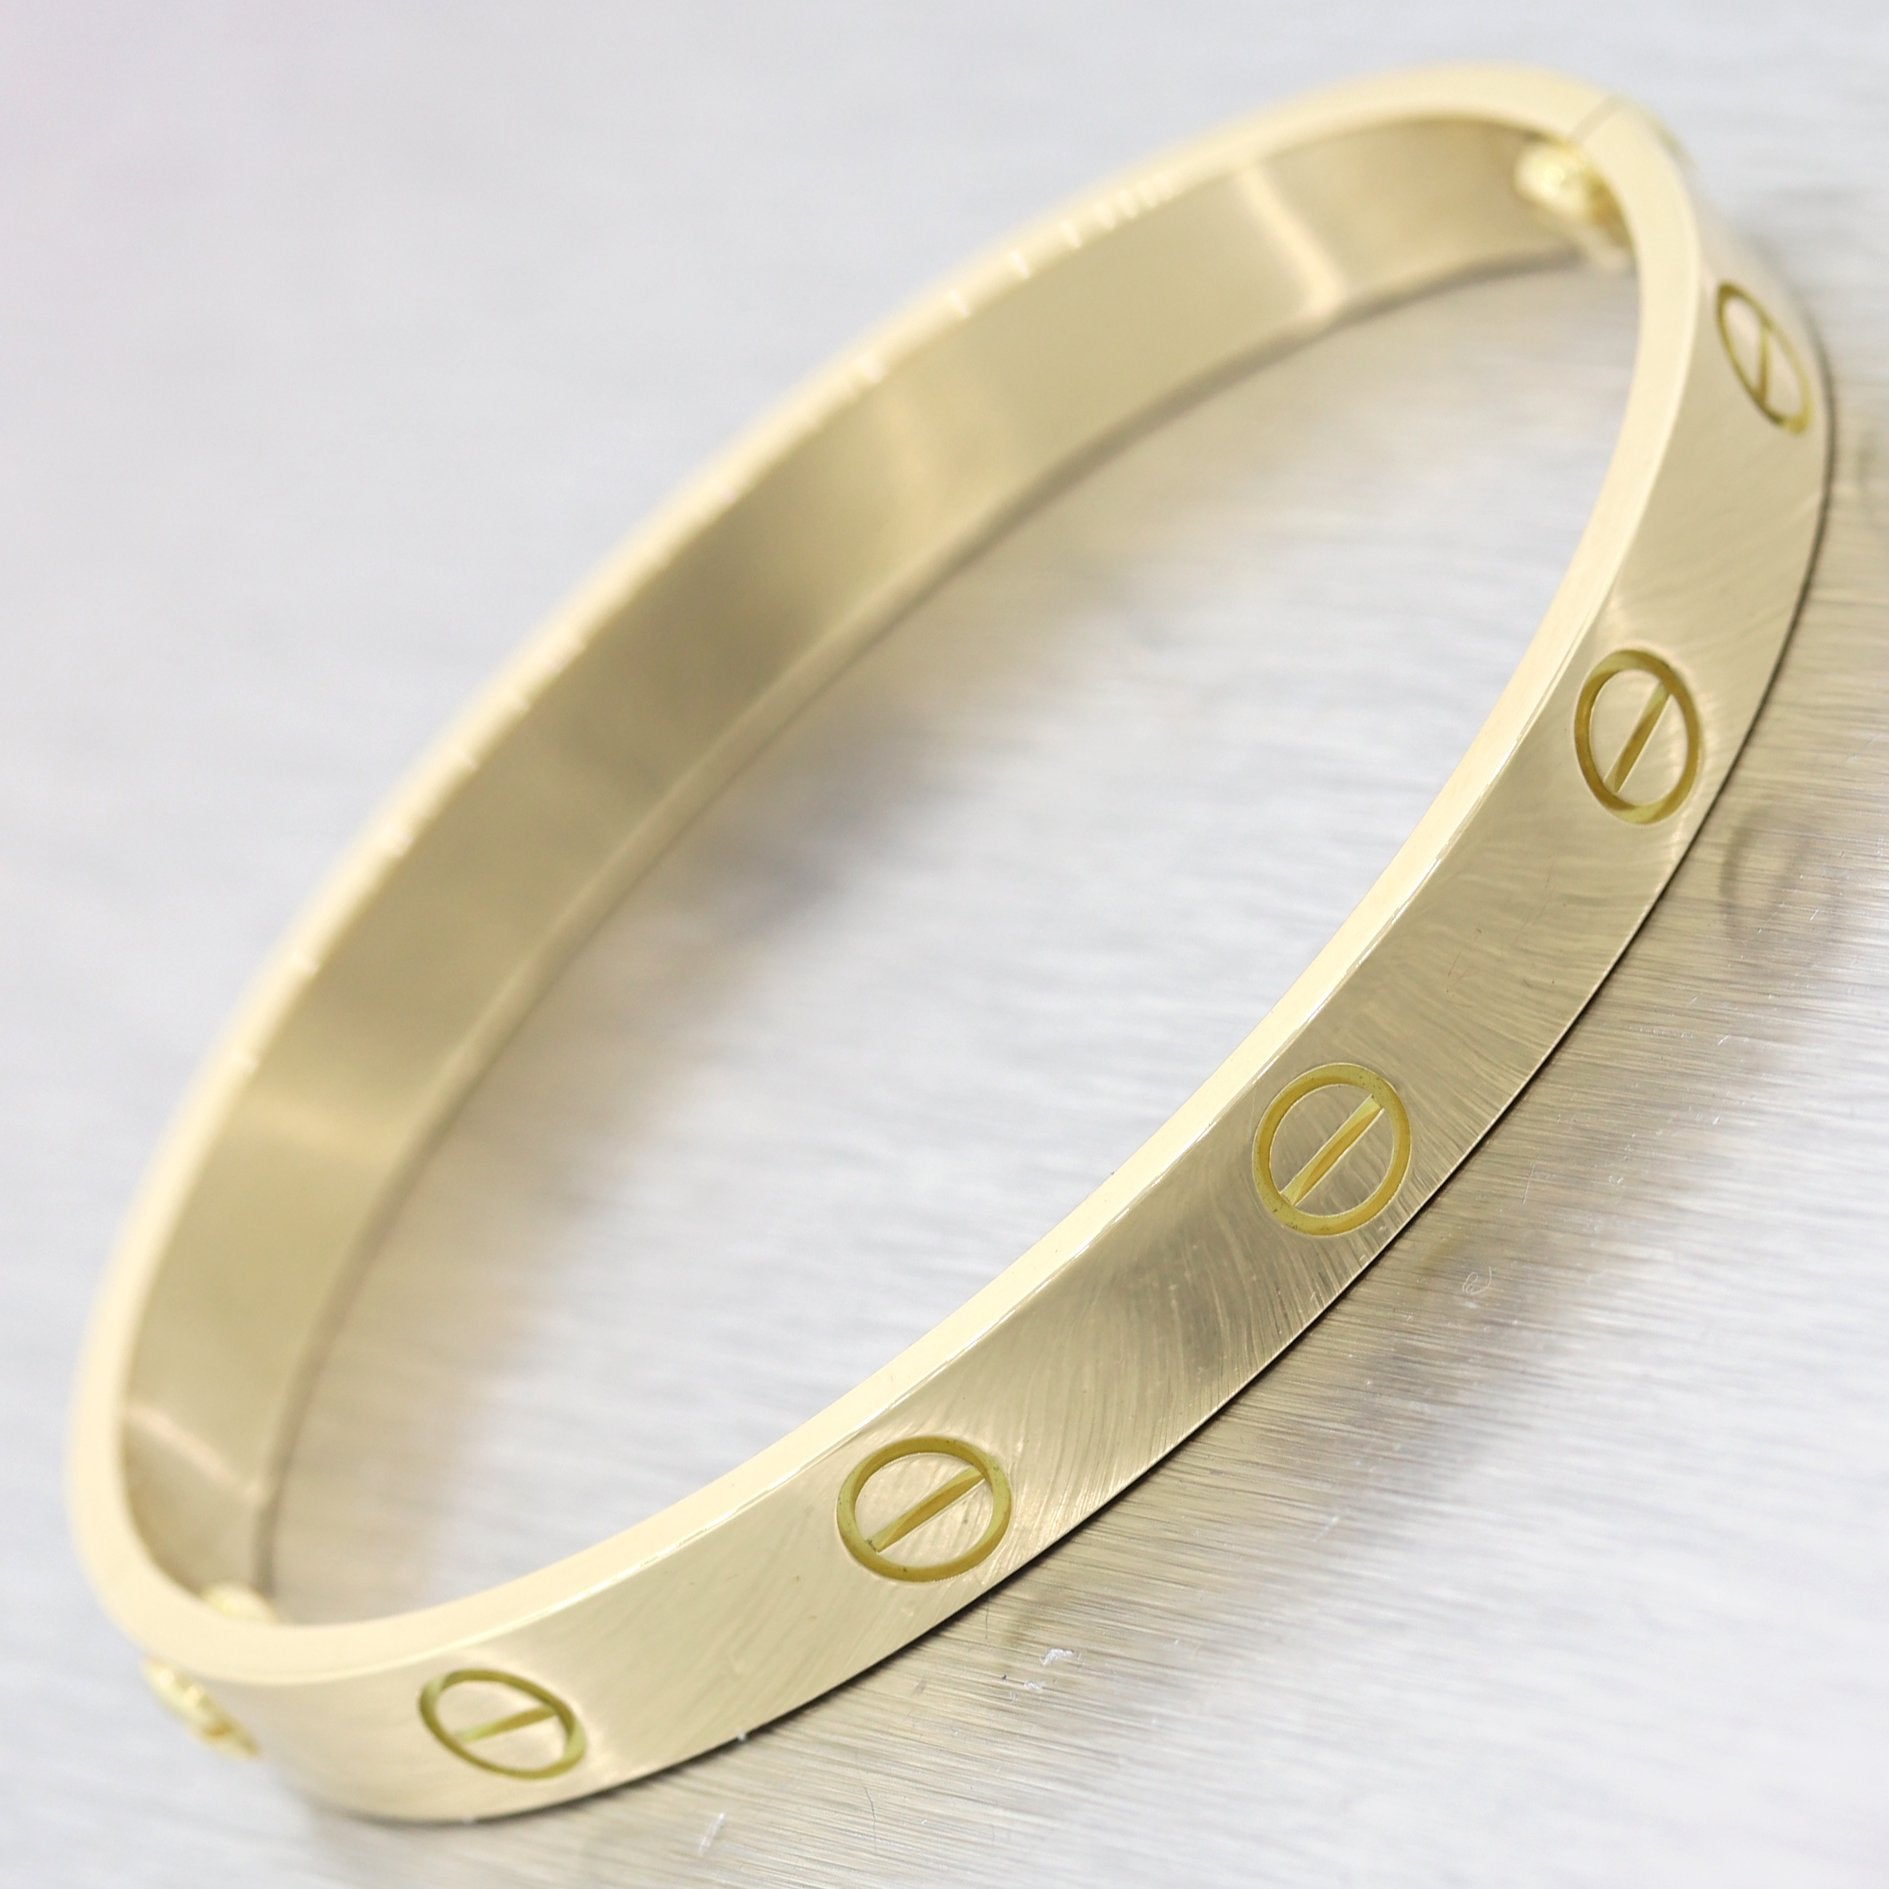 2006 Cartier 18k Yellow Gold Old Style Love Bangle Bracelet Sz 16 BP